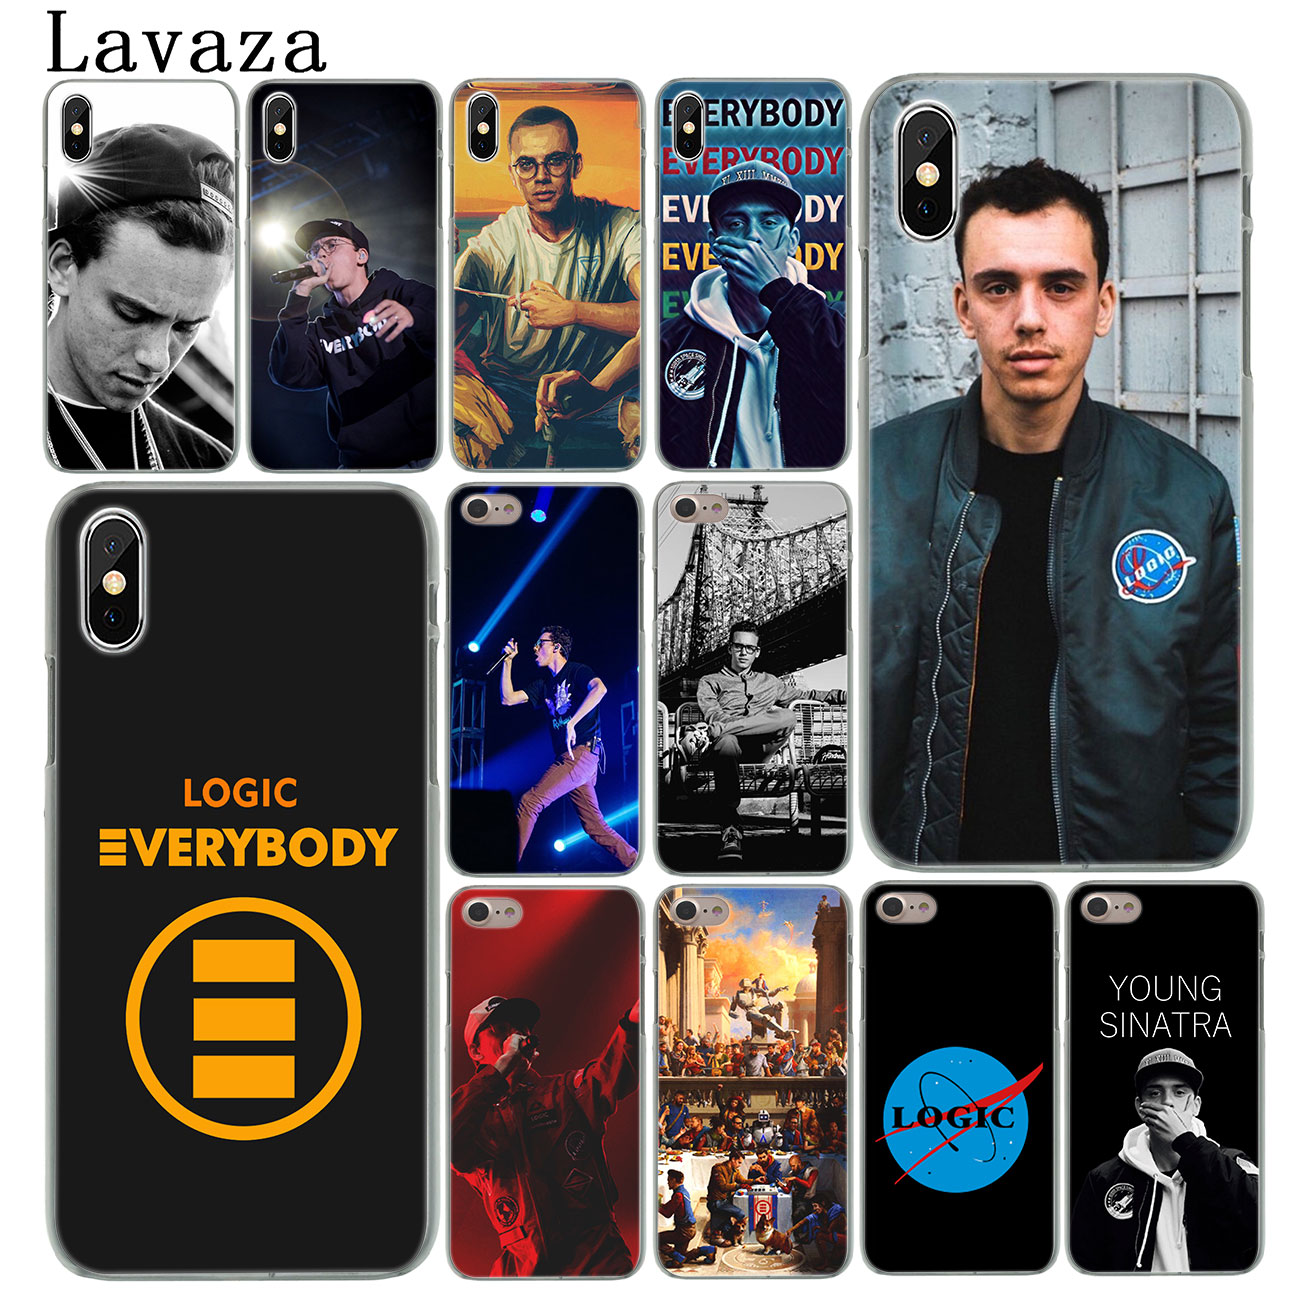 Phone Bags & Cases Hearty Webbedepp Box Doctor Who Soft Silicone Case For Apple Iphone Xr Xs Max X Or 10 8 7 6 6s Plus 5 5s Se Phone Case